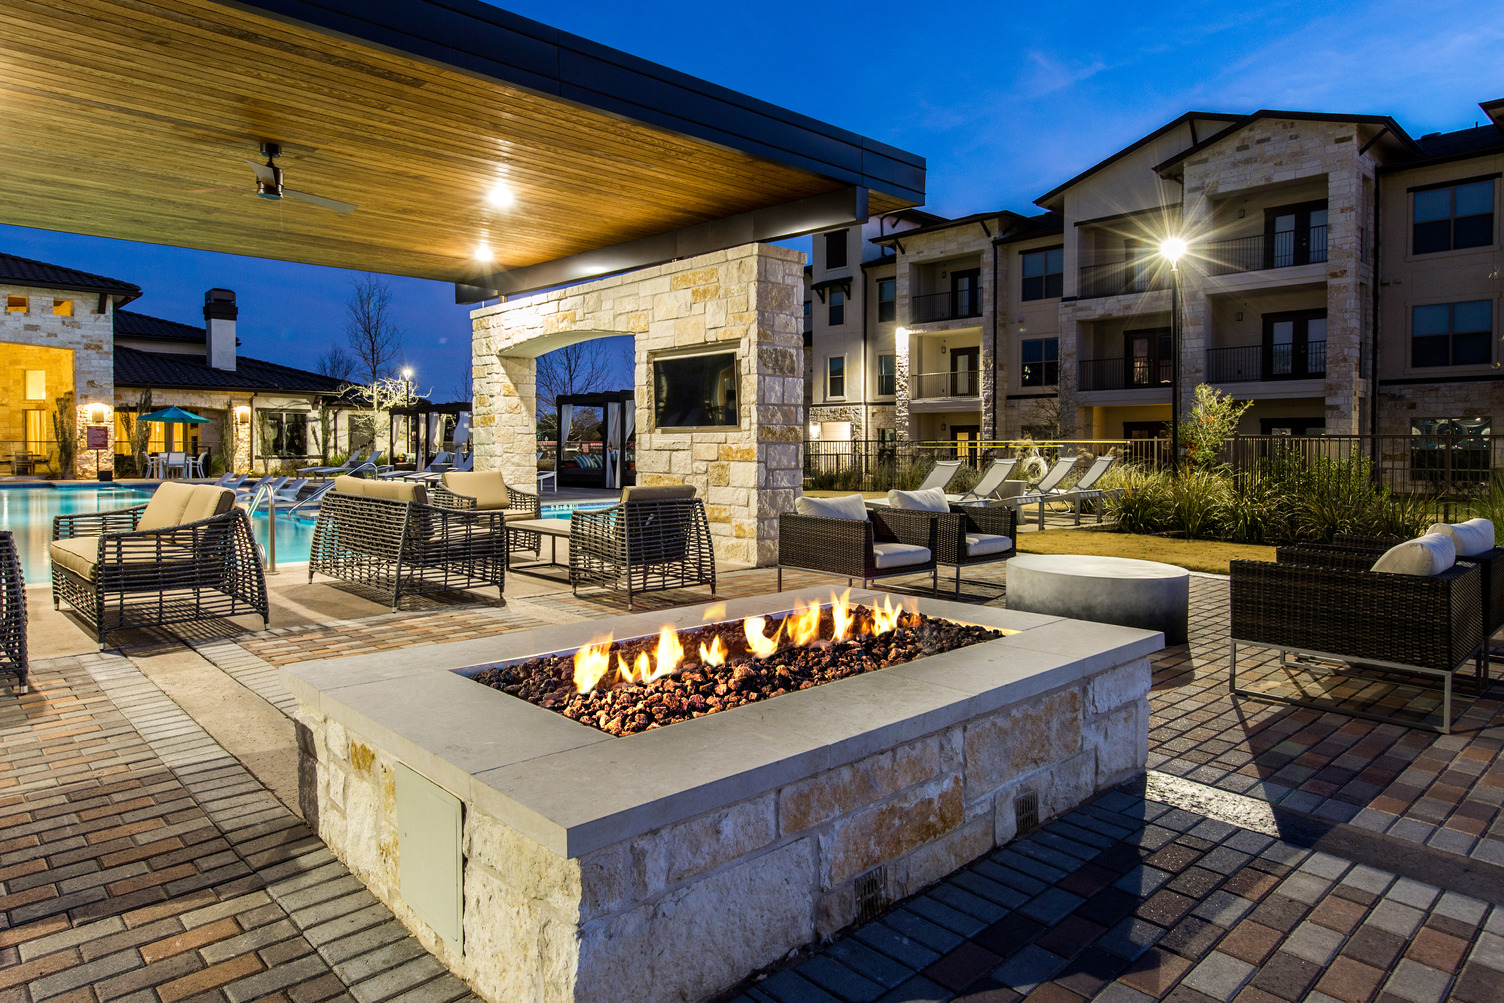 Fire pit and outdoor seating area near pool deck